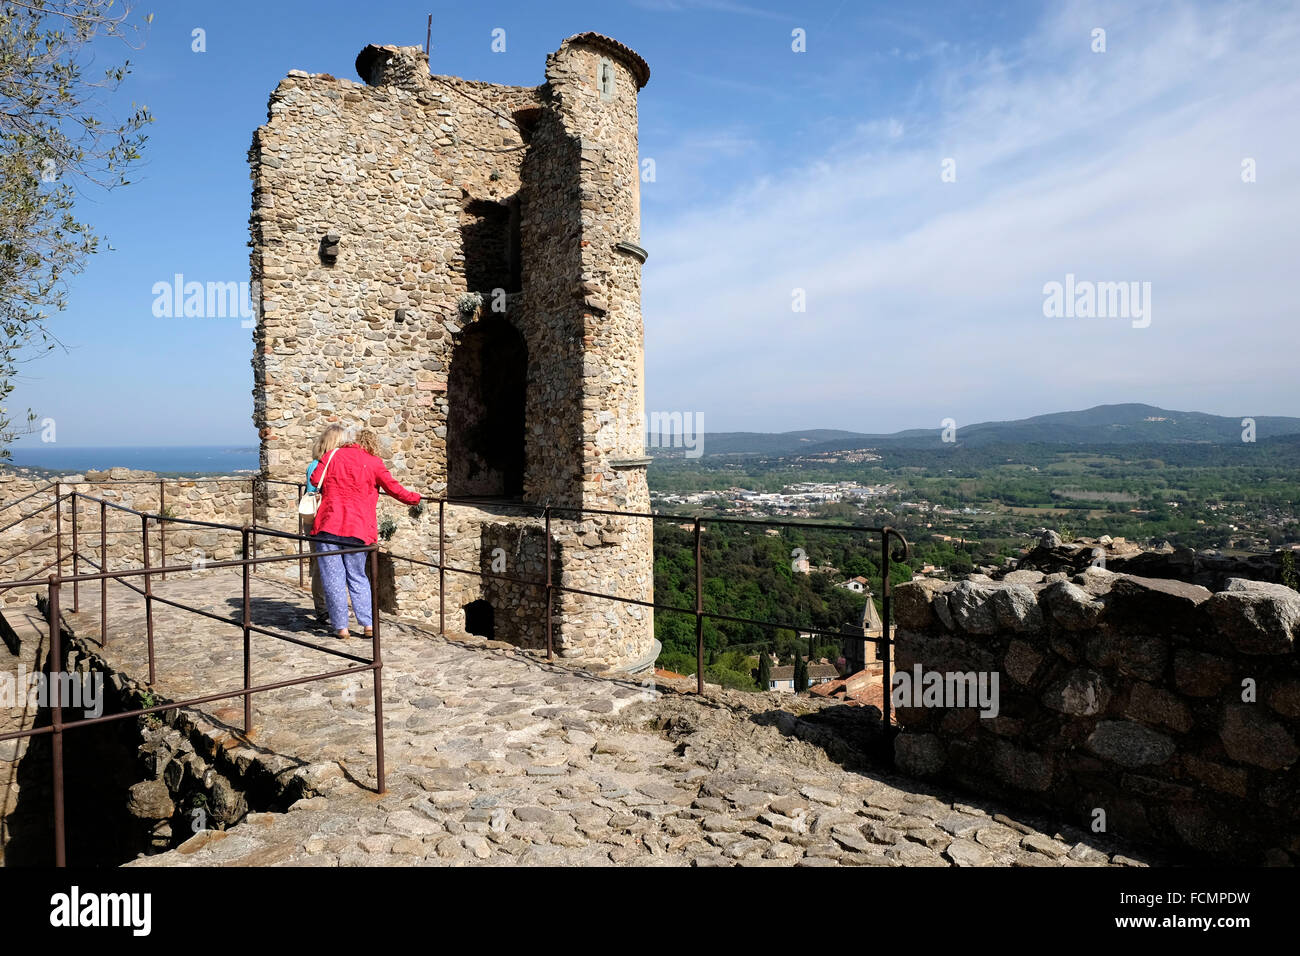 Part of the ruined castle at Grimaud, South of France. - Stock Image